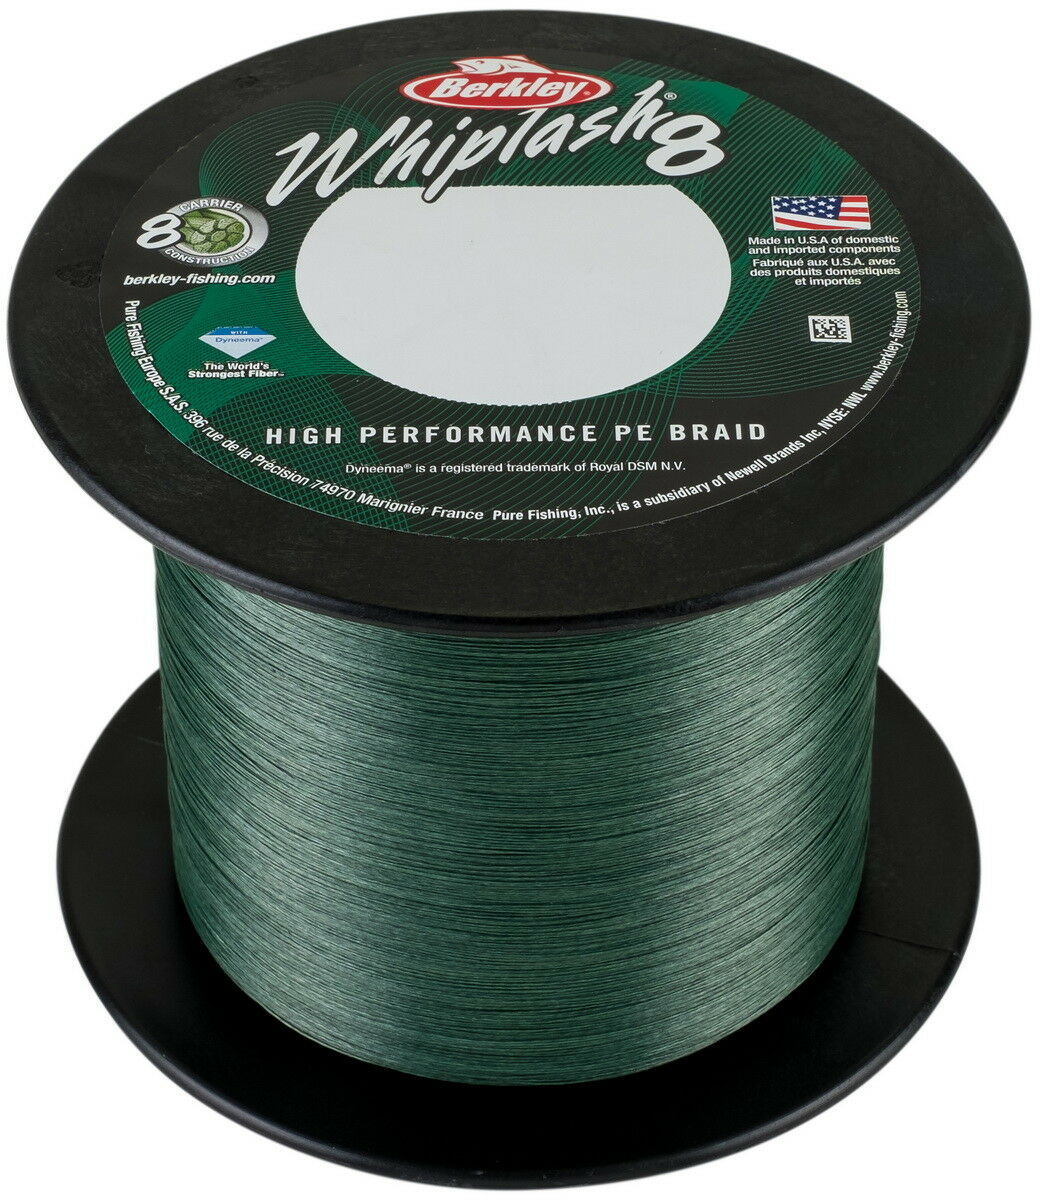 Berkley Whiplash 8 2000m 0.10 verde, Intrecciato lenza, braided line